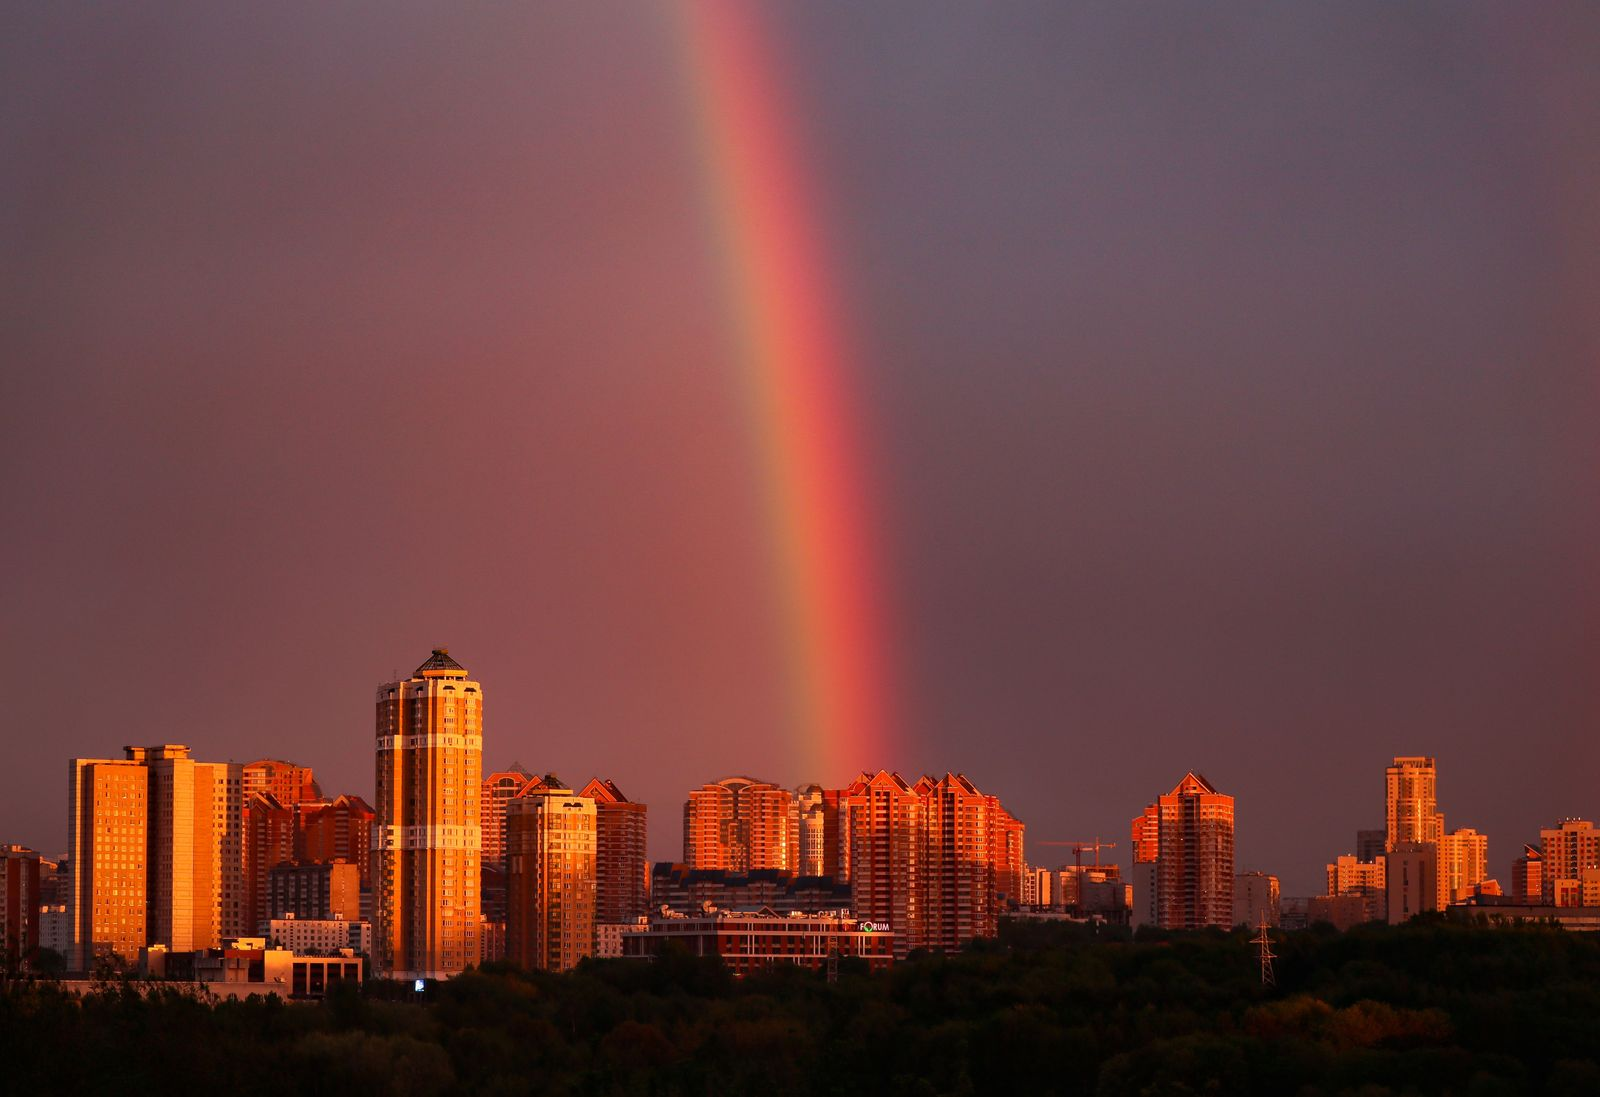 Sunset Rainbow in Moscow, Russian Federation - 14 May 2020